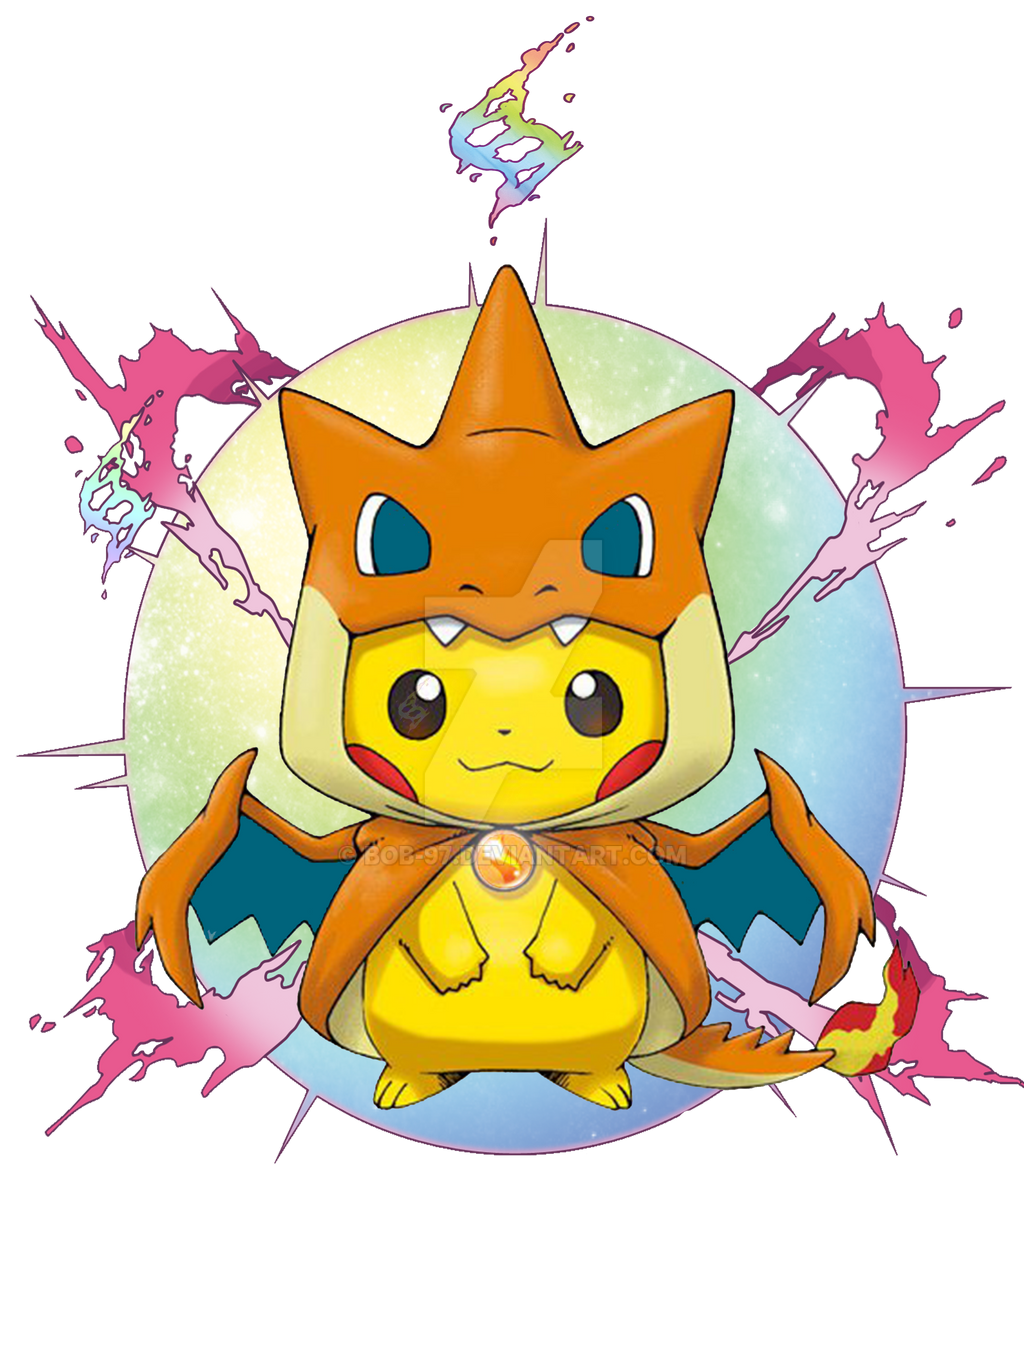 Pikachu Mega Charizard By Bob 97 On Deviantart